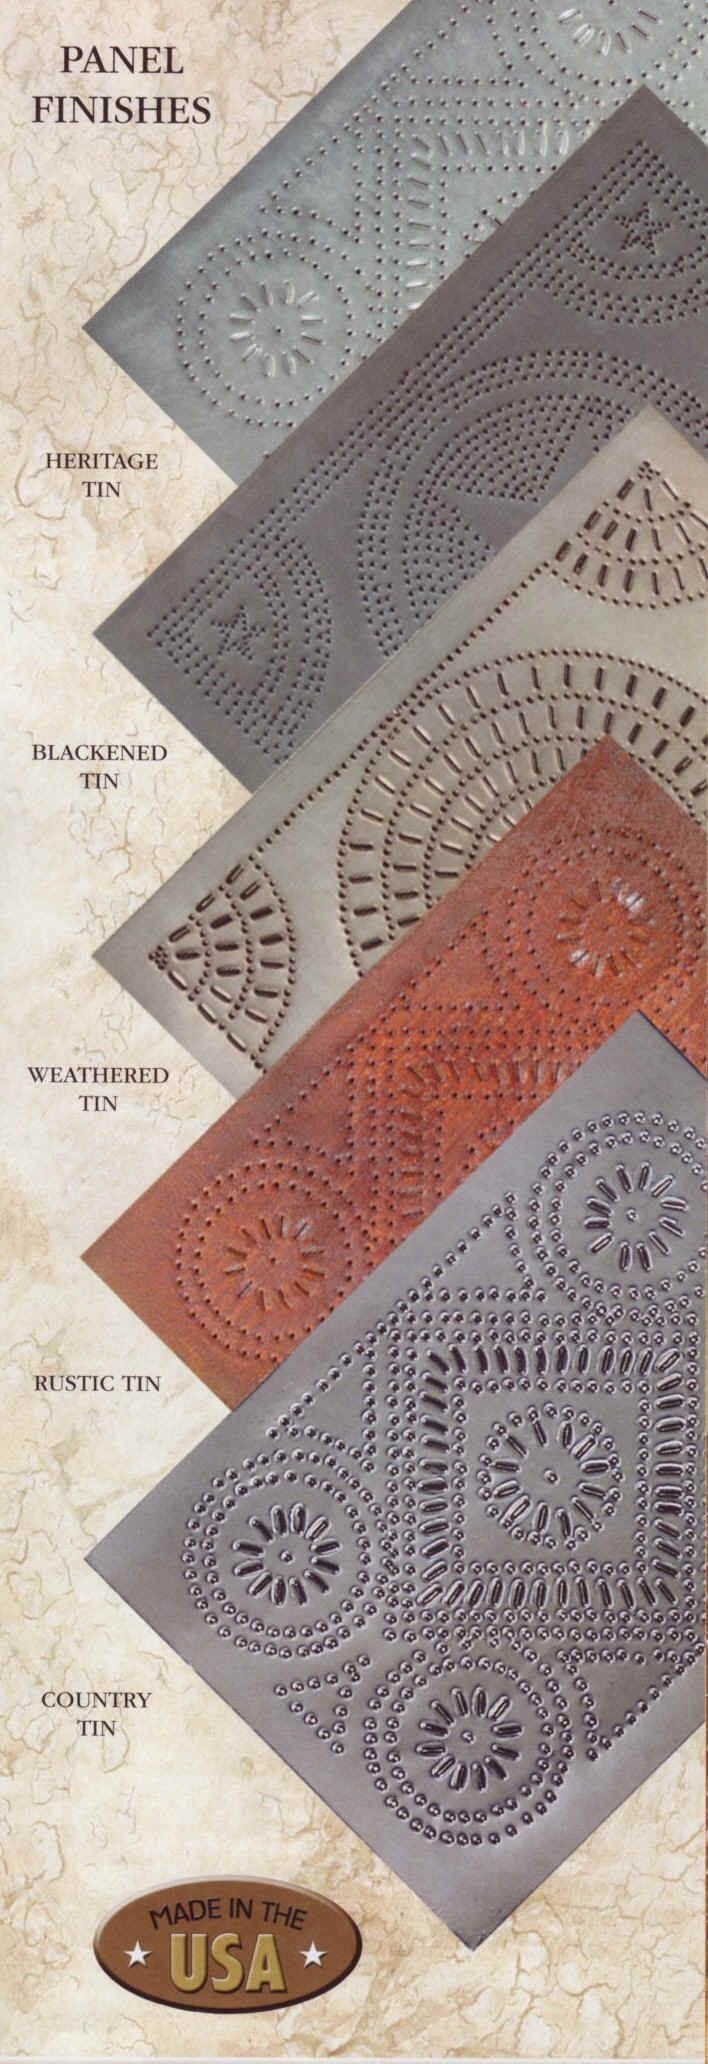 punched tin finishes for ceilings backsplash or renovations love the heritage - Tin Ceilings